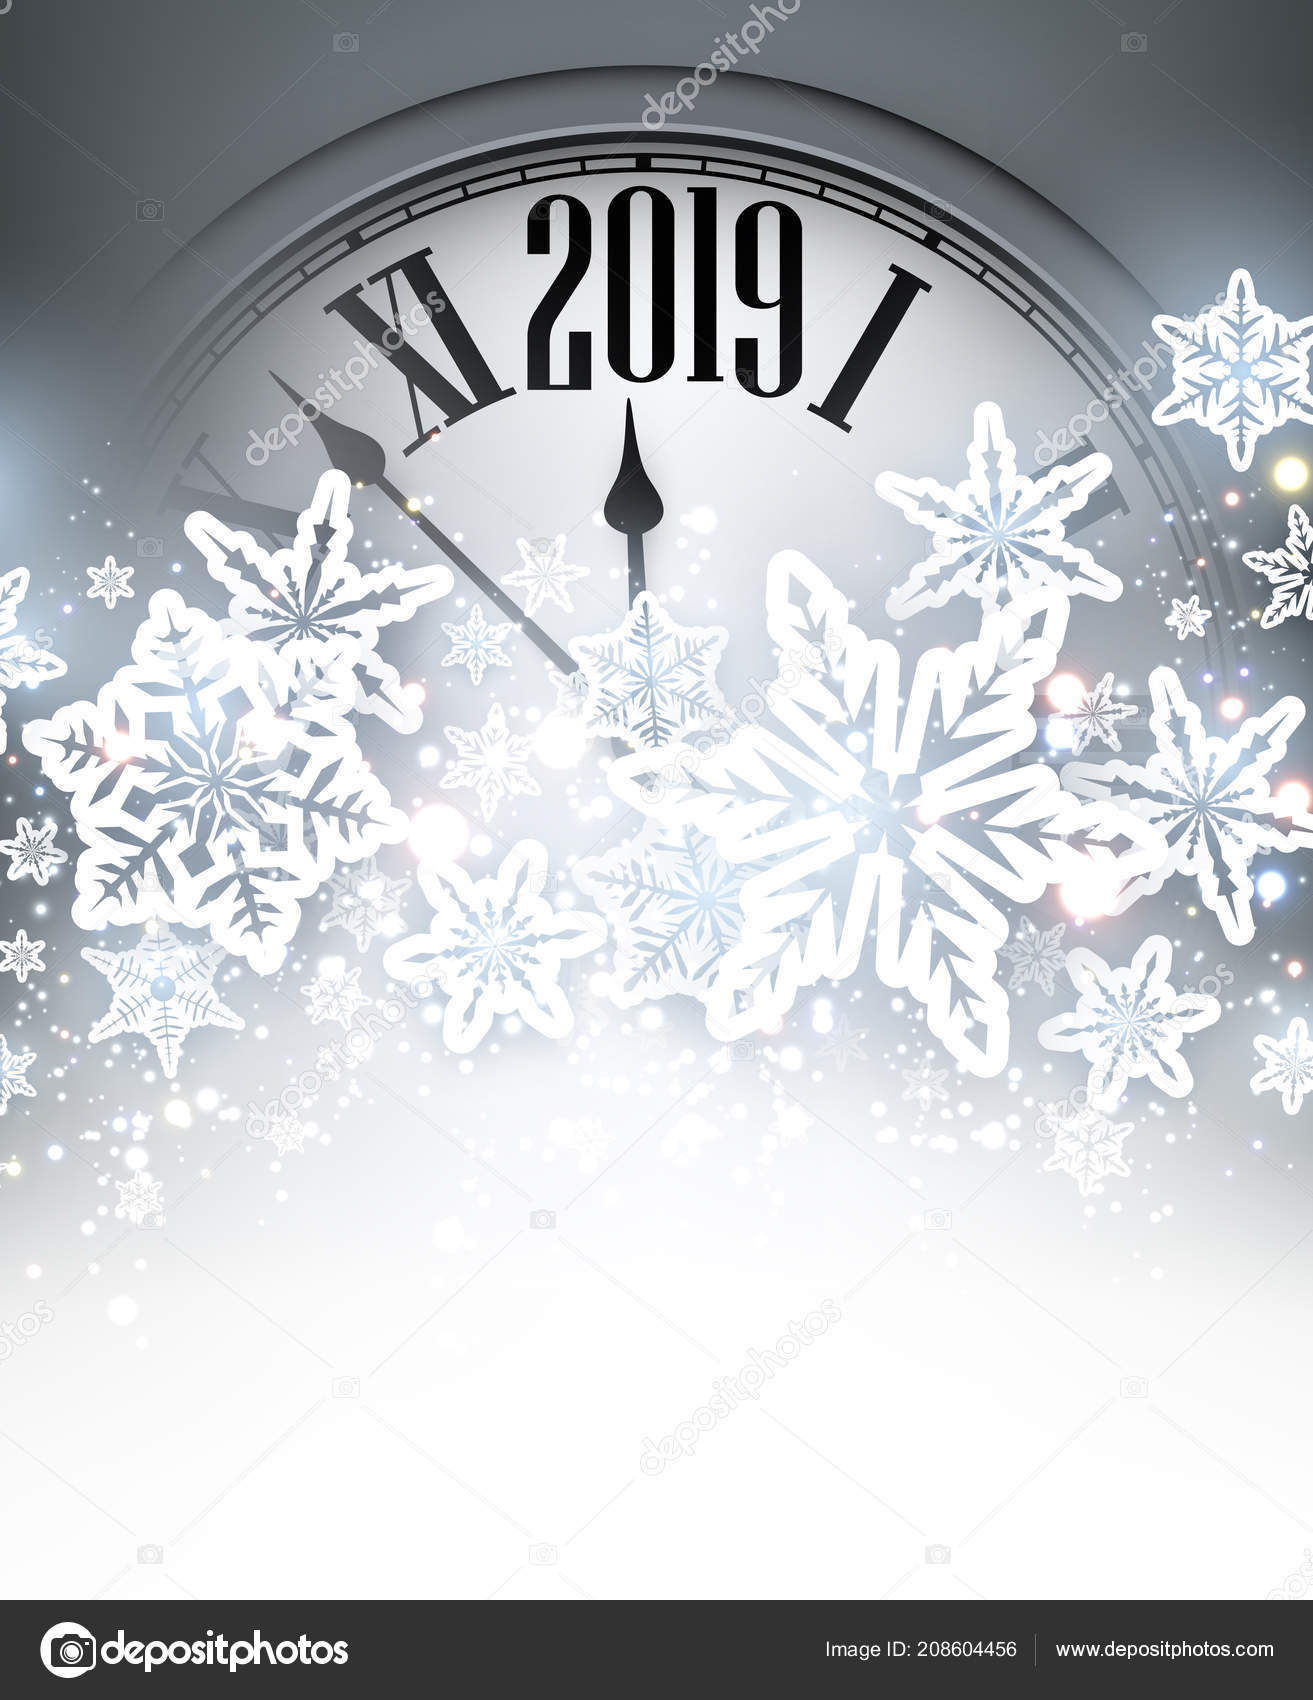 grey shiny 2019 new year background silver clock snowflakes beautiful stock vector